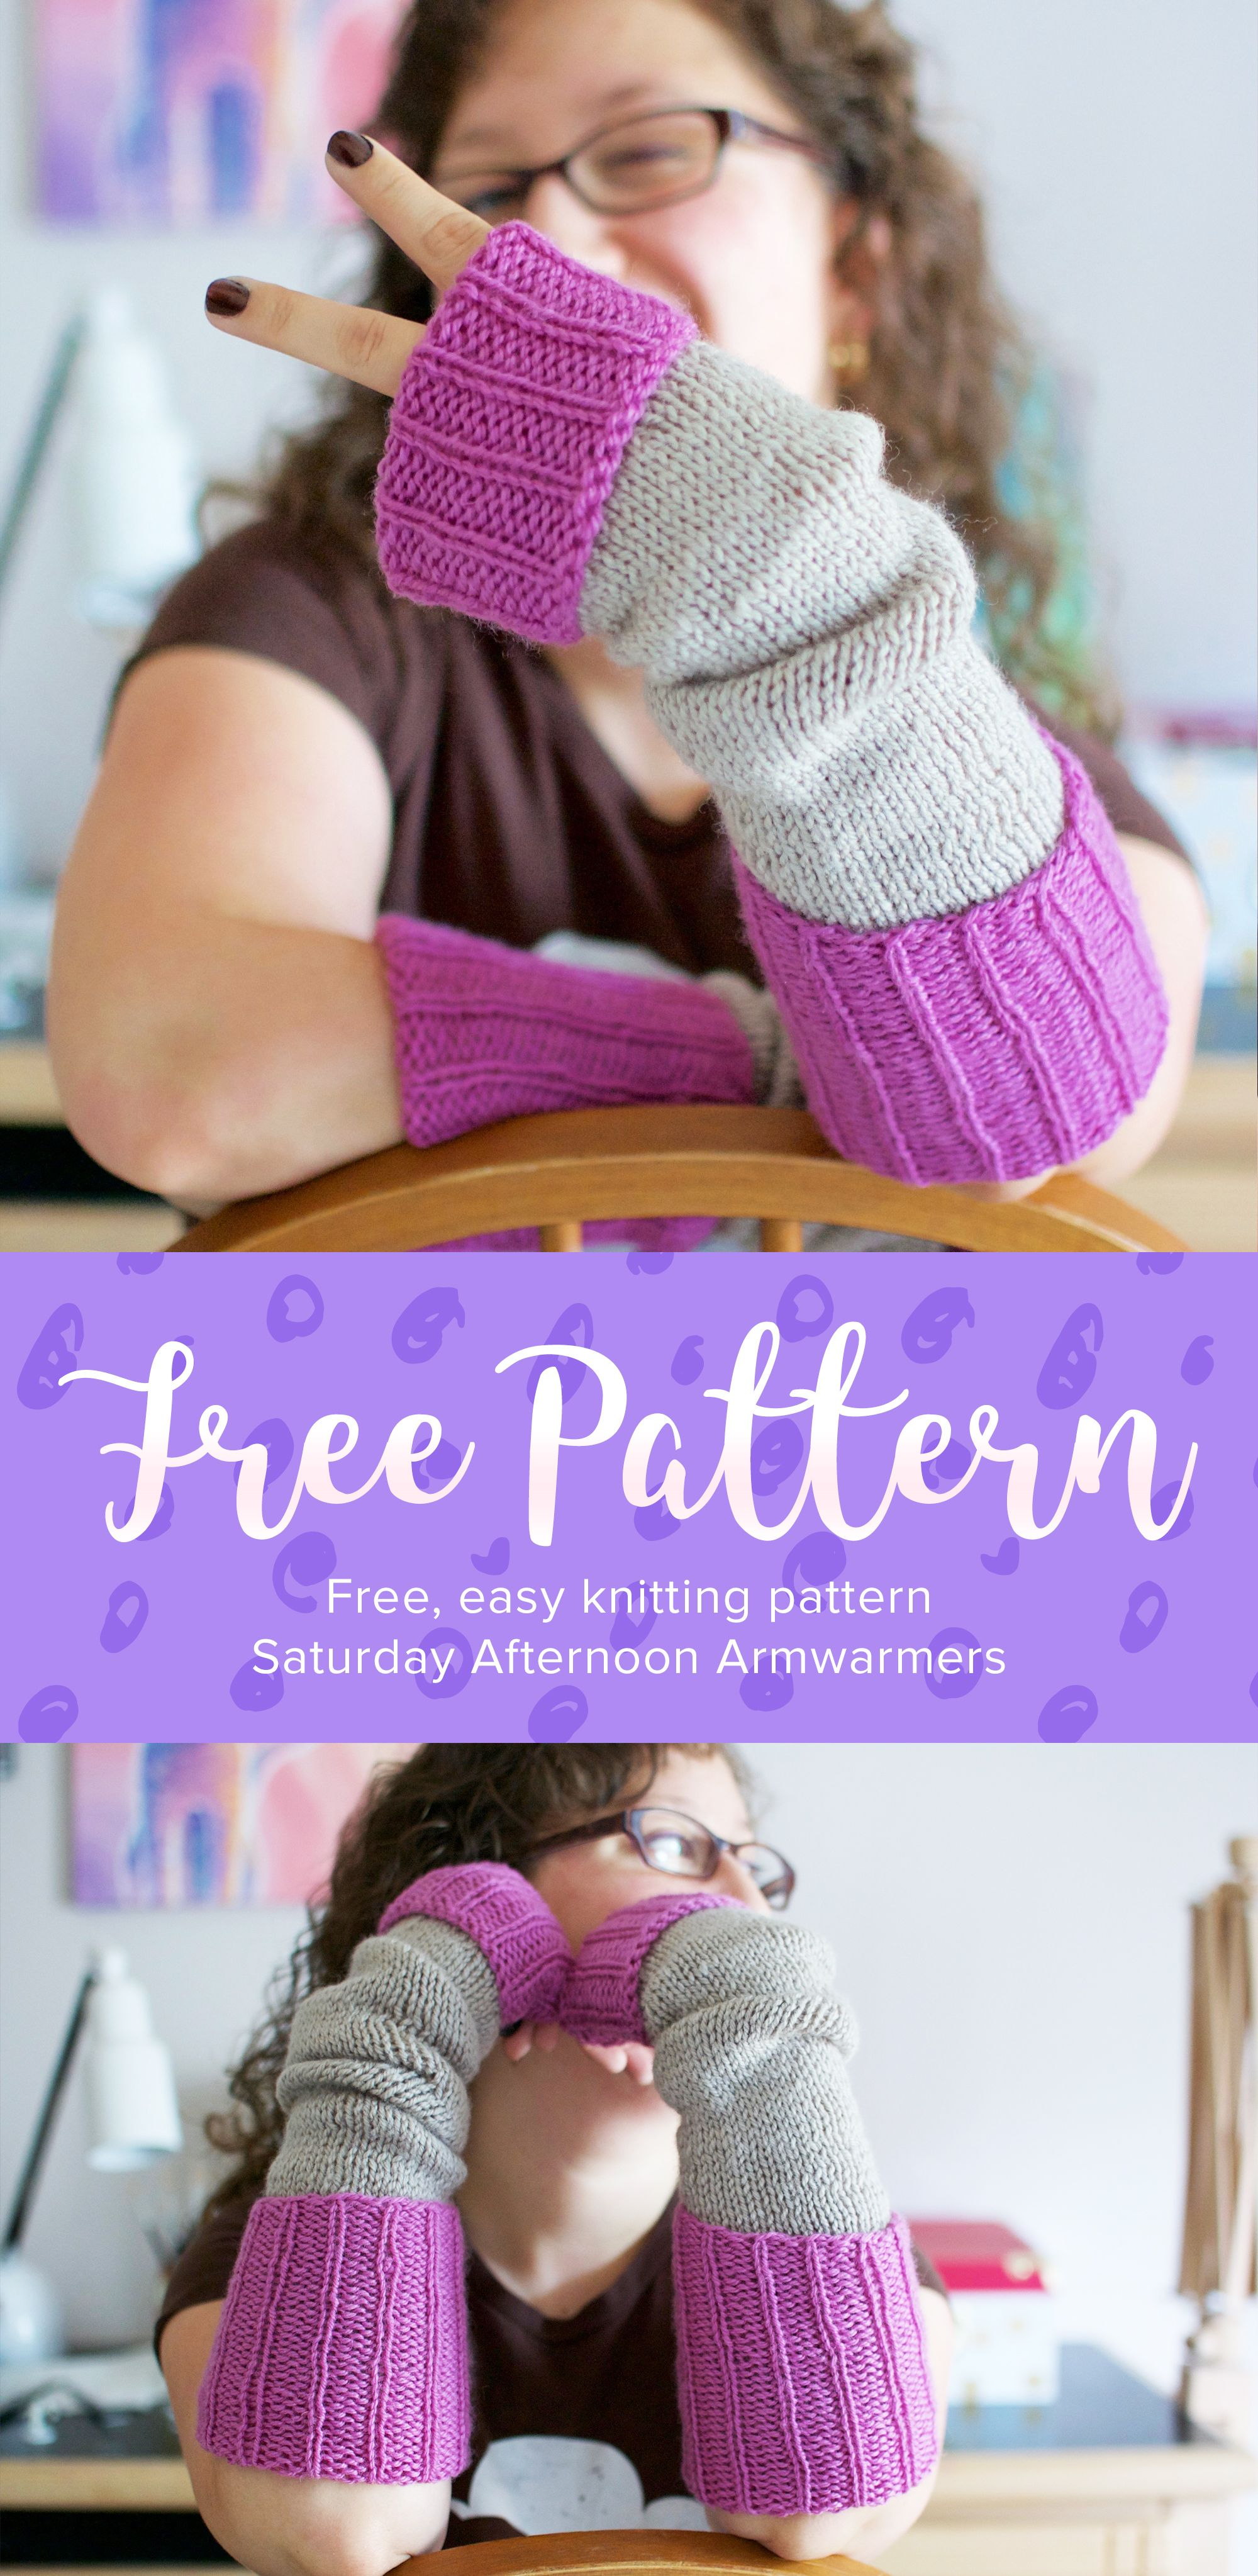 Knitting these armwarmers is like reading your favorite ...